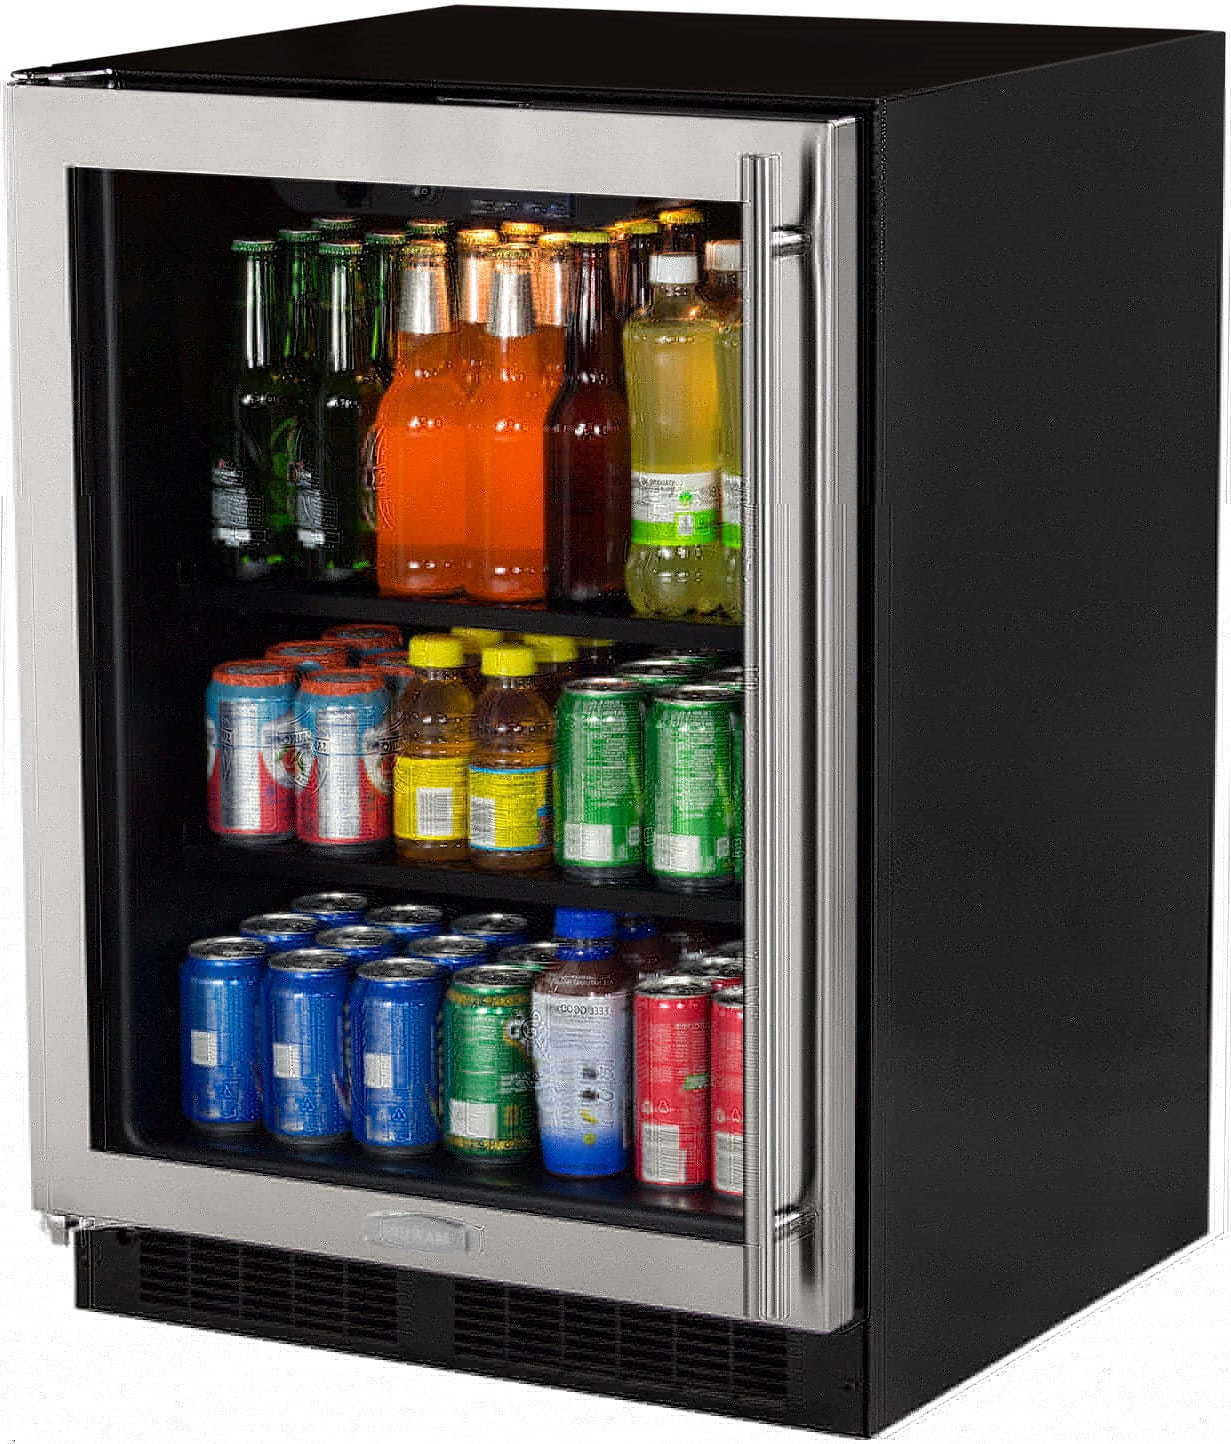 Marvel Ml24bcg0ls 24 Inch Built In Beverage Center With